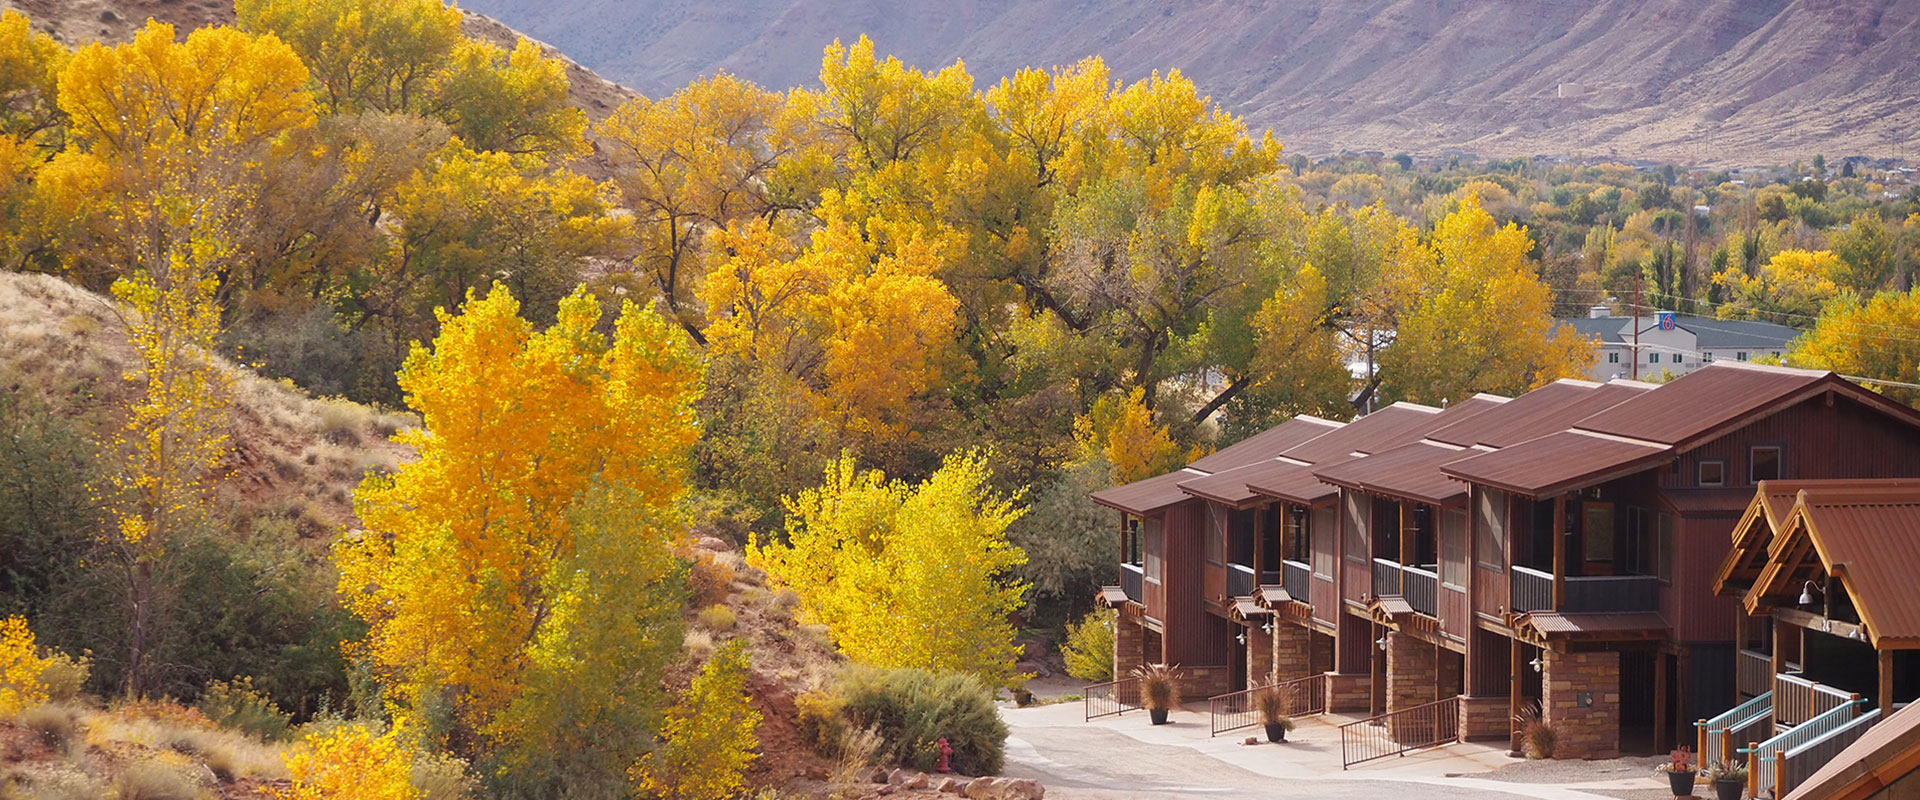 Barren brown tree branches droop over a pond with its' banks covered with a light sprinkle of snow at Moab Spring Ranch in winter.